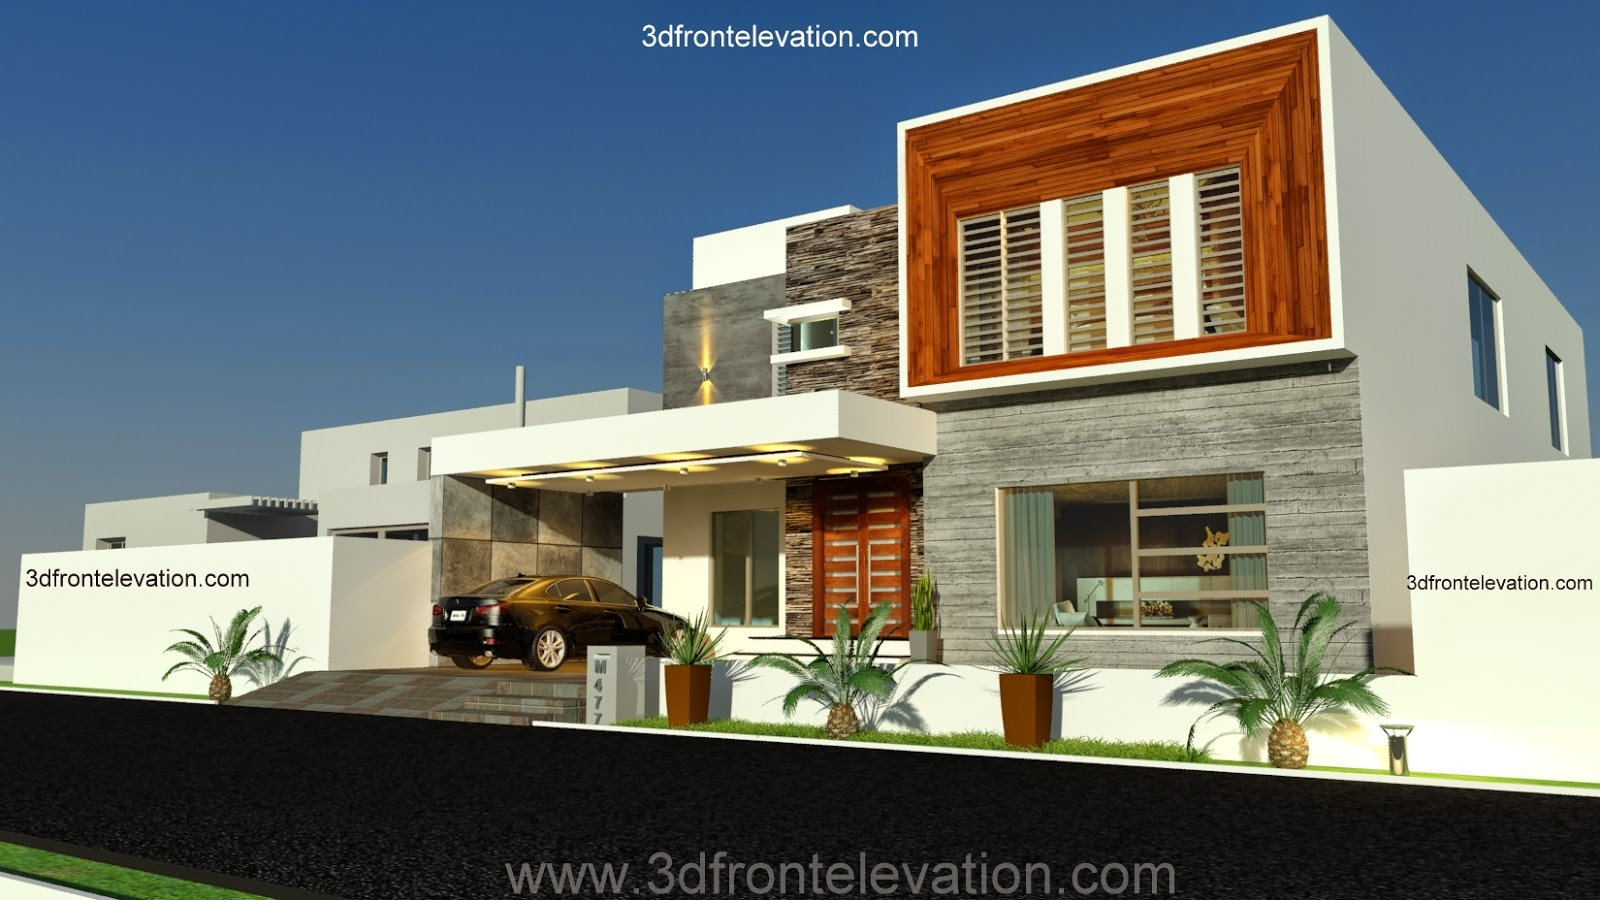 Home Design In Pakistan: New House Design In Pakistan